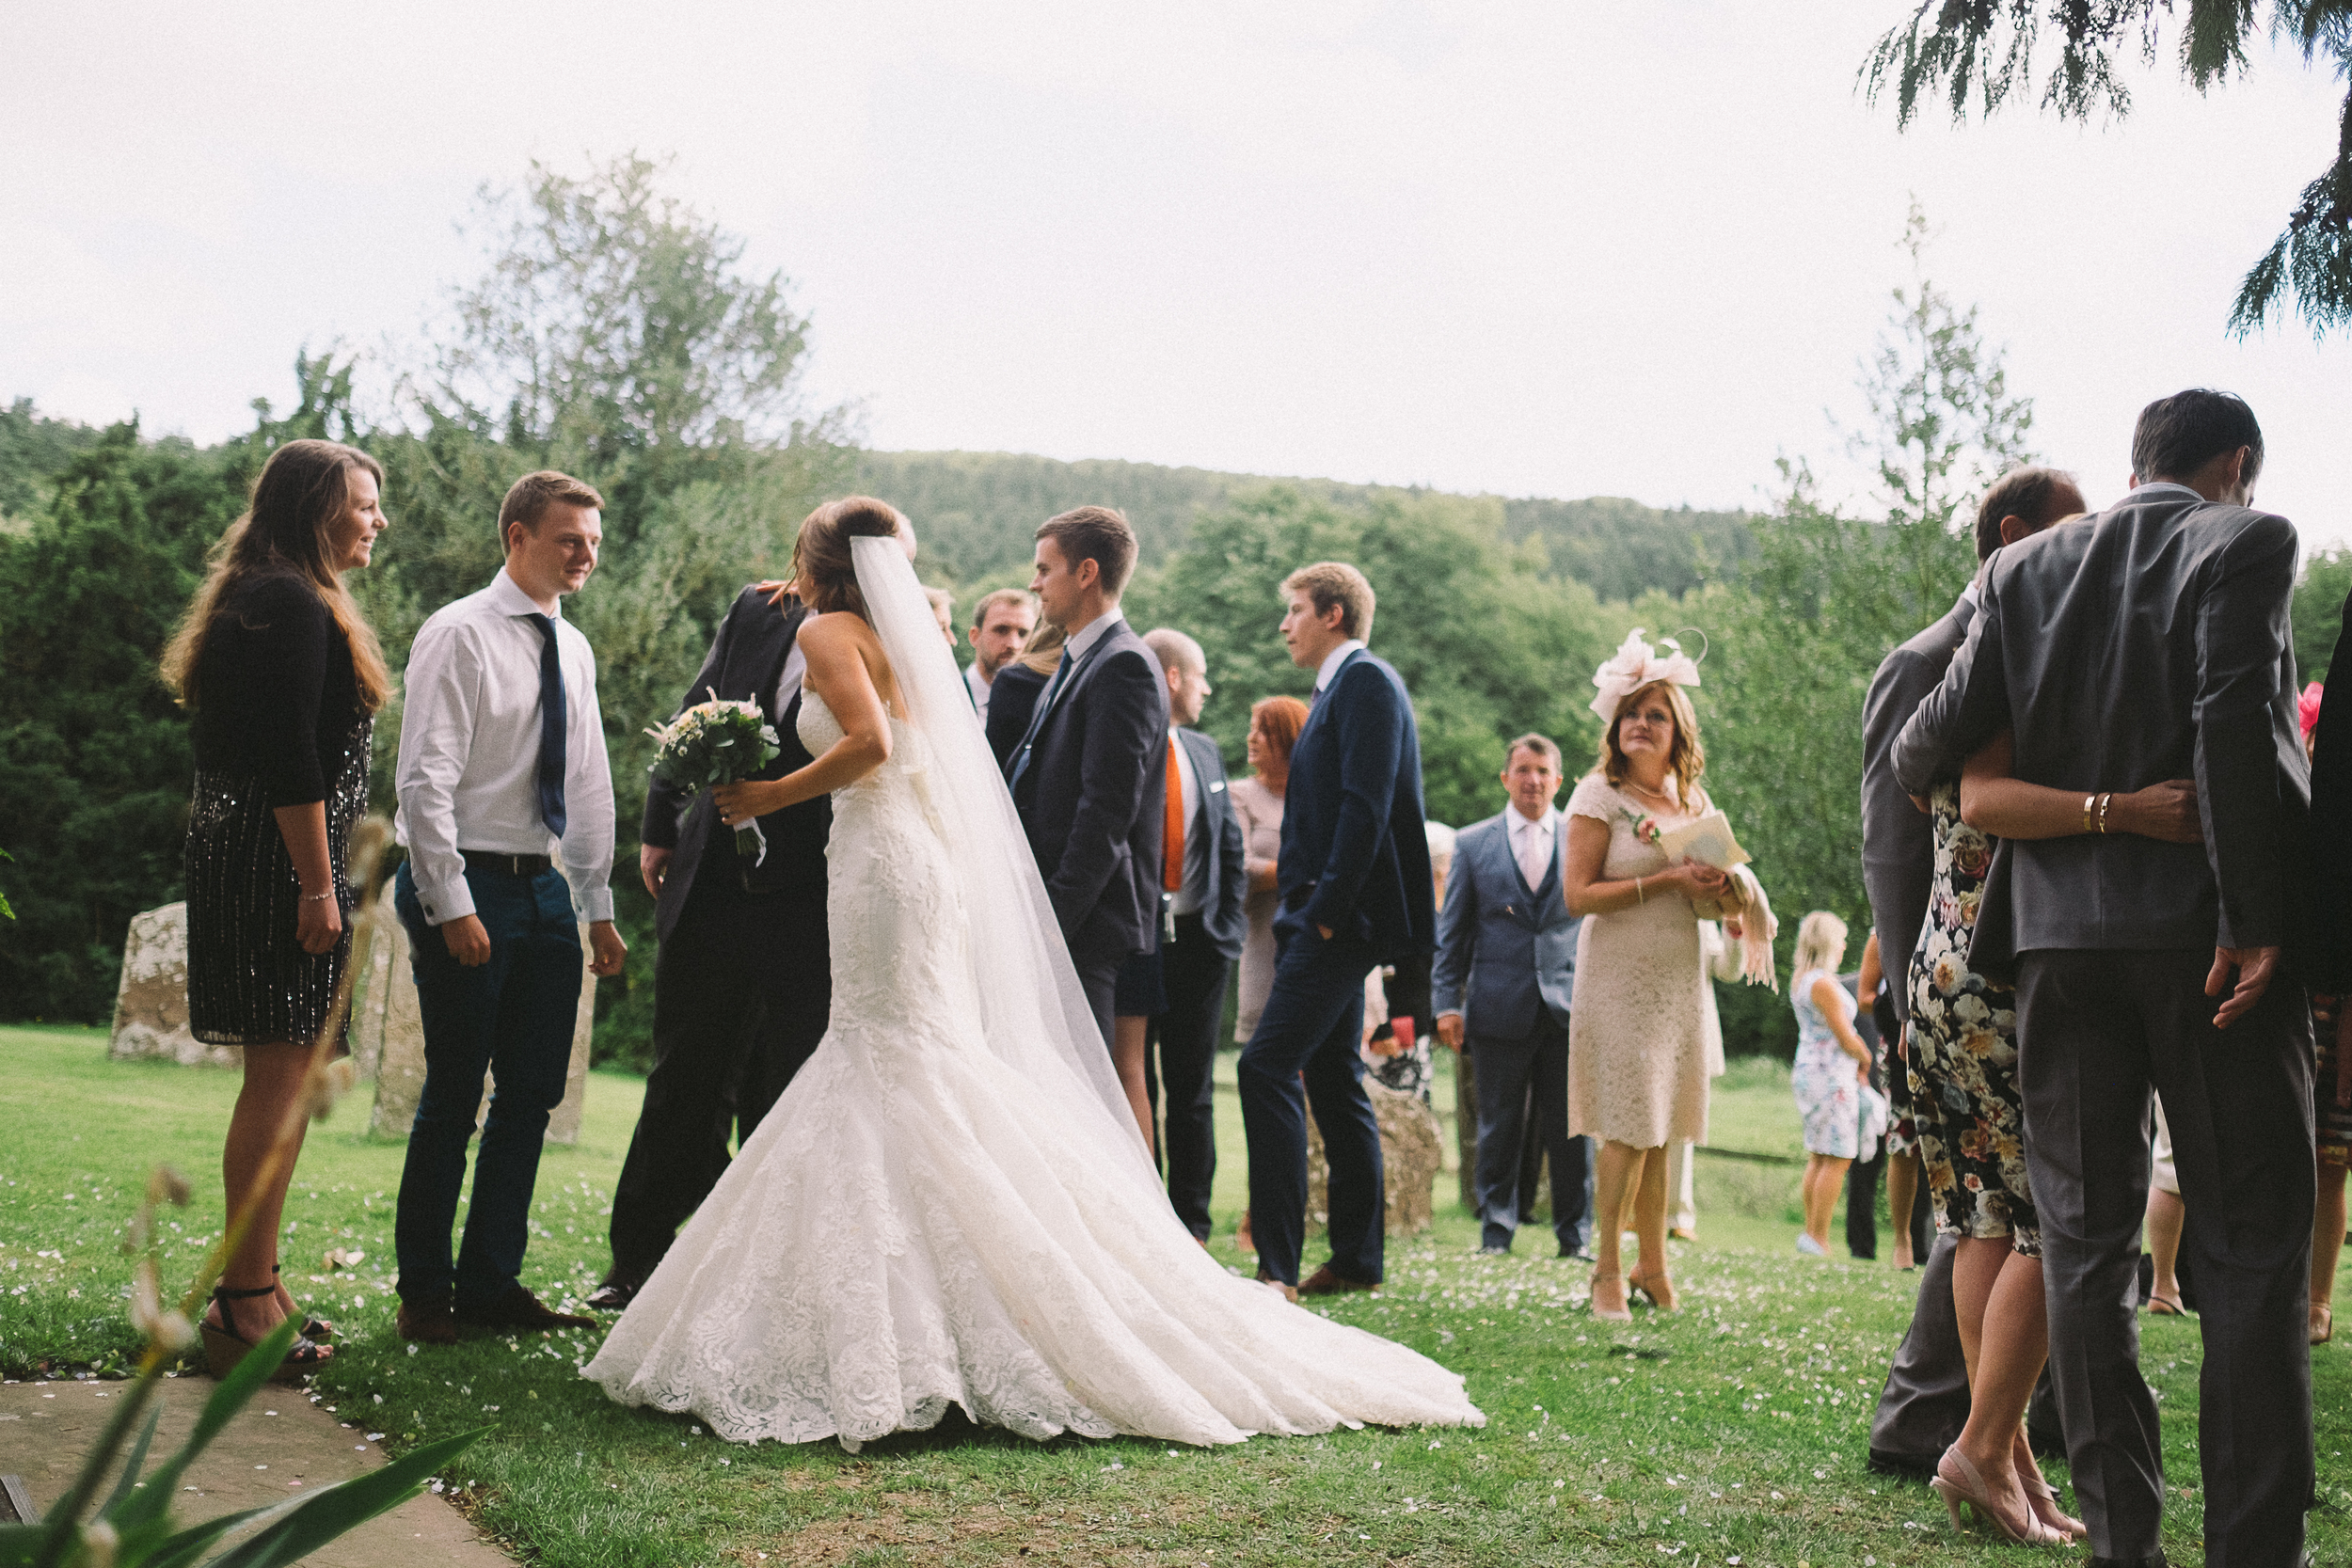 lucy_rich_wedding-213.jpg